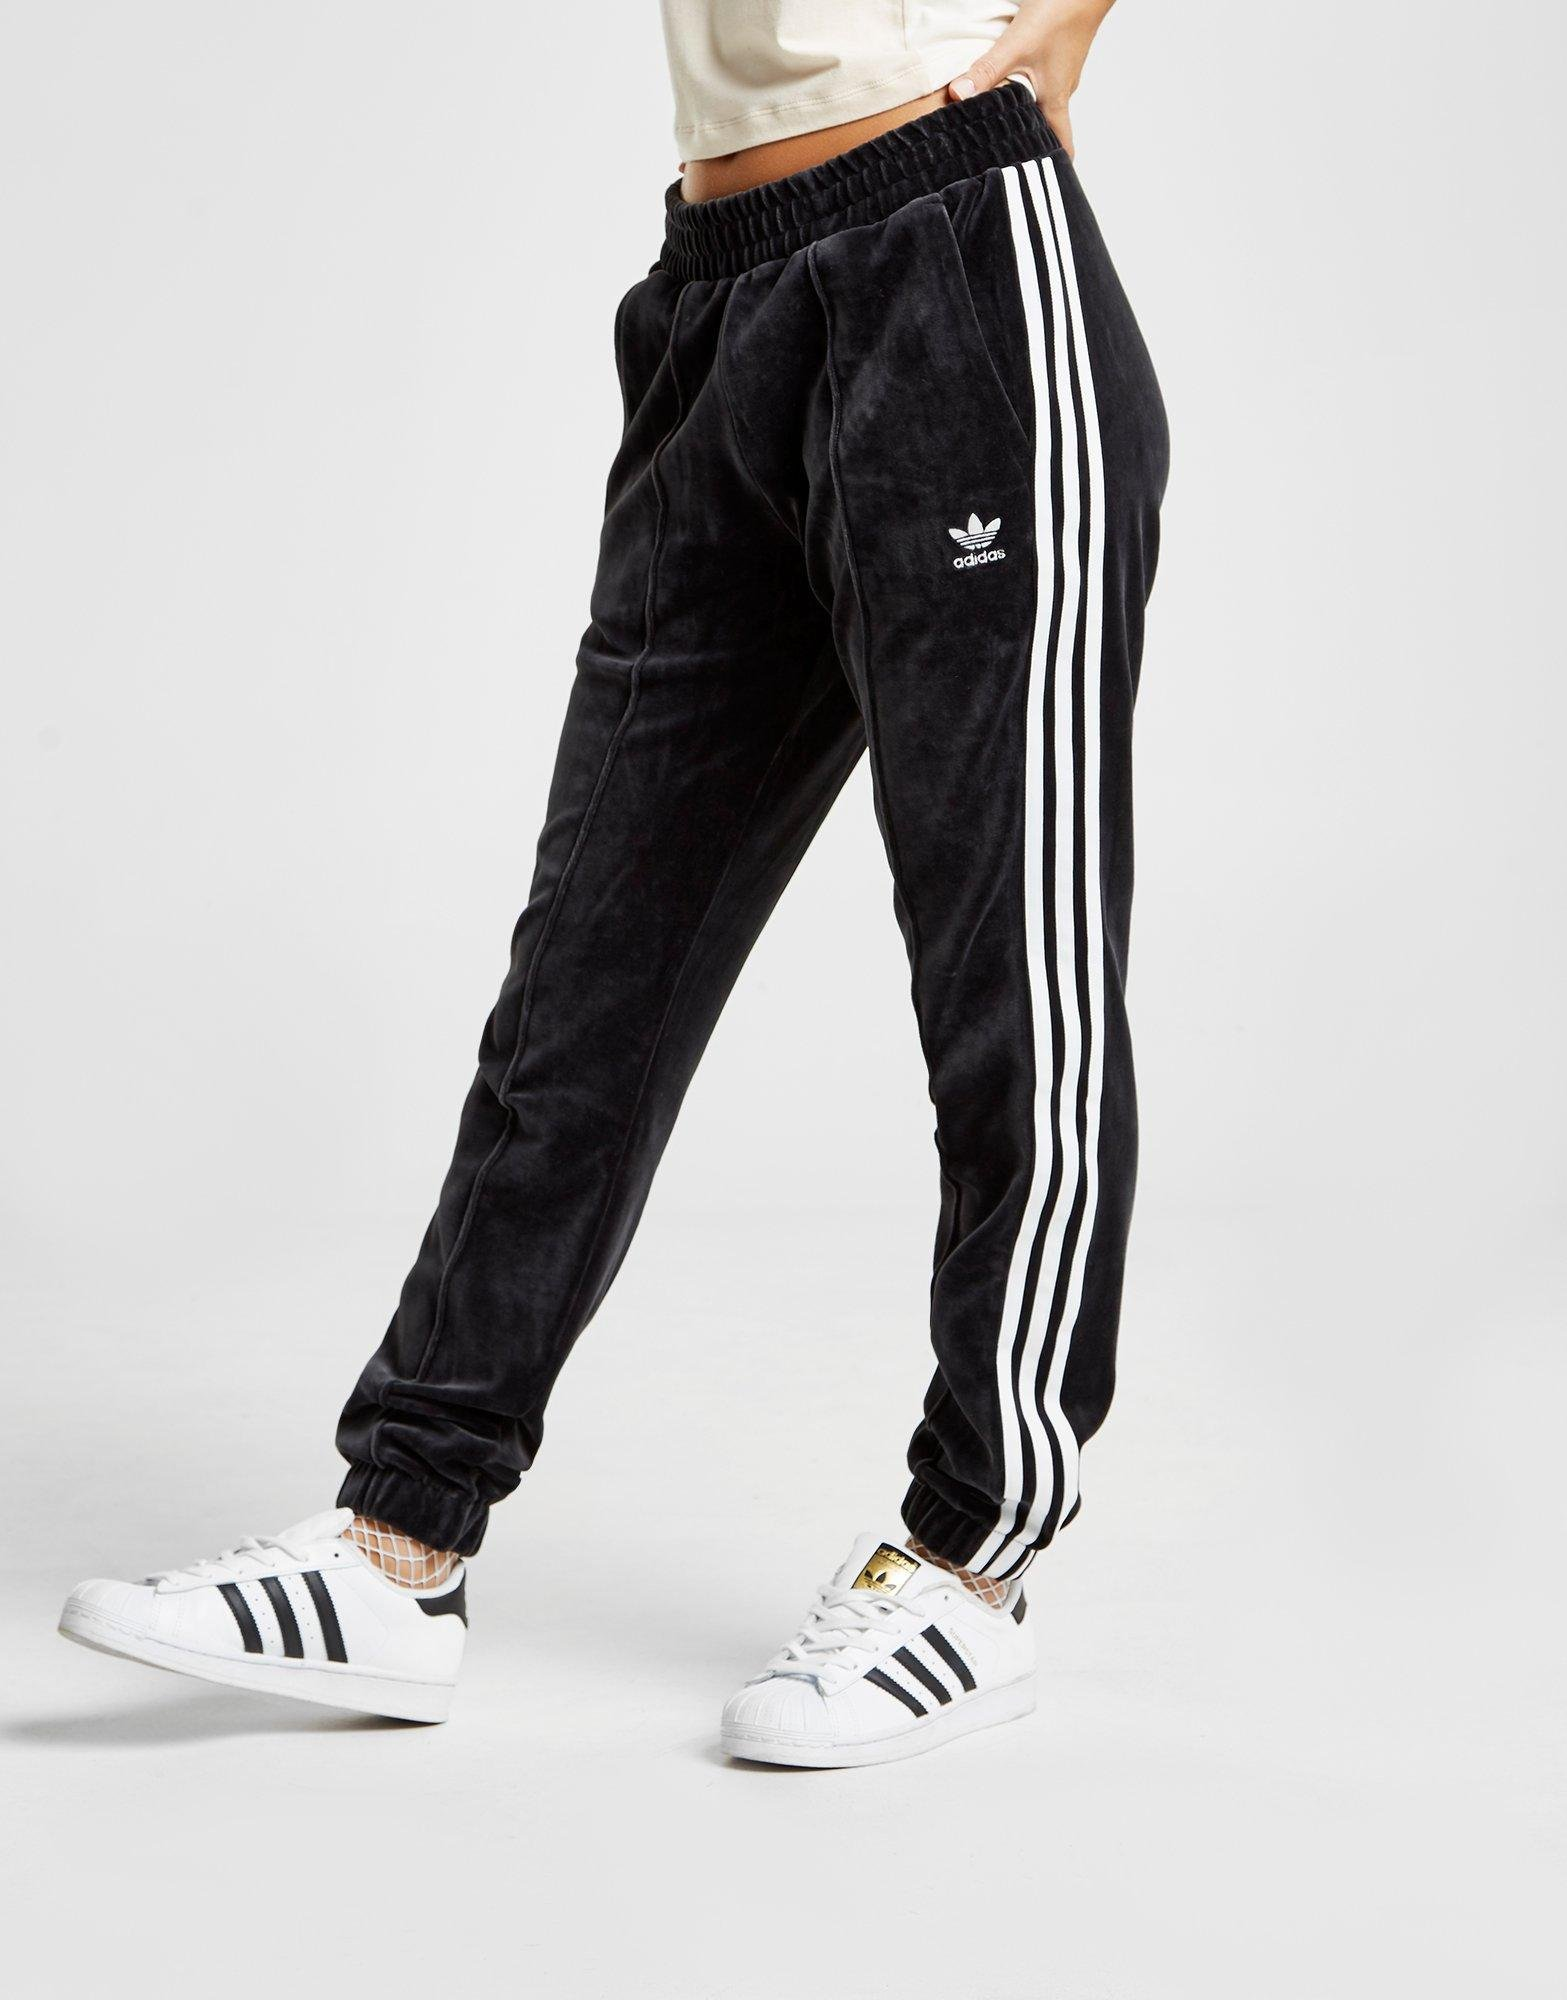 057f848db adidas Originals. Women's Black 3-stripes Velvet Track Trousers